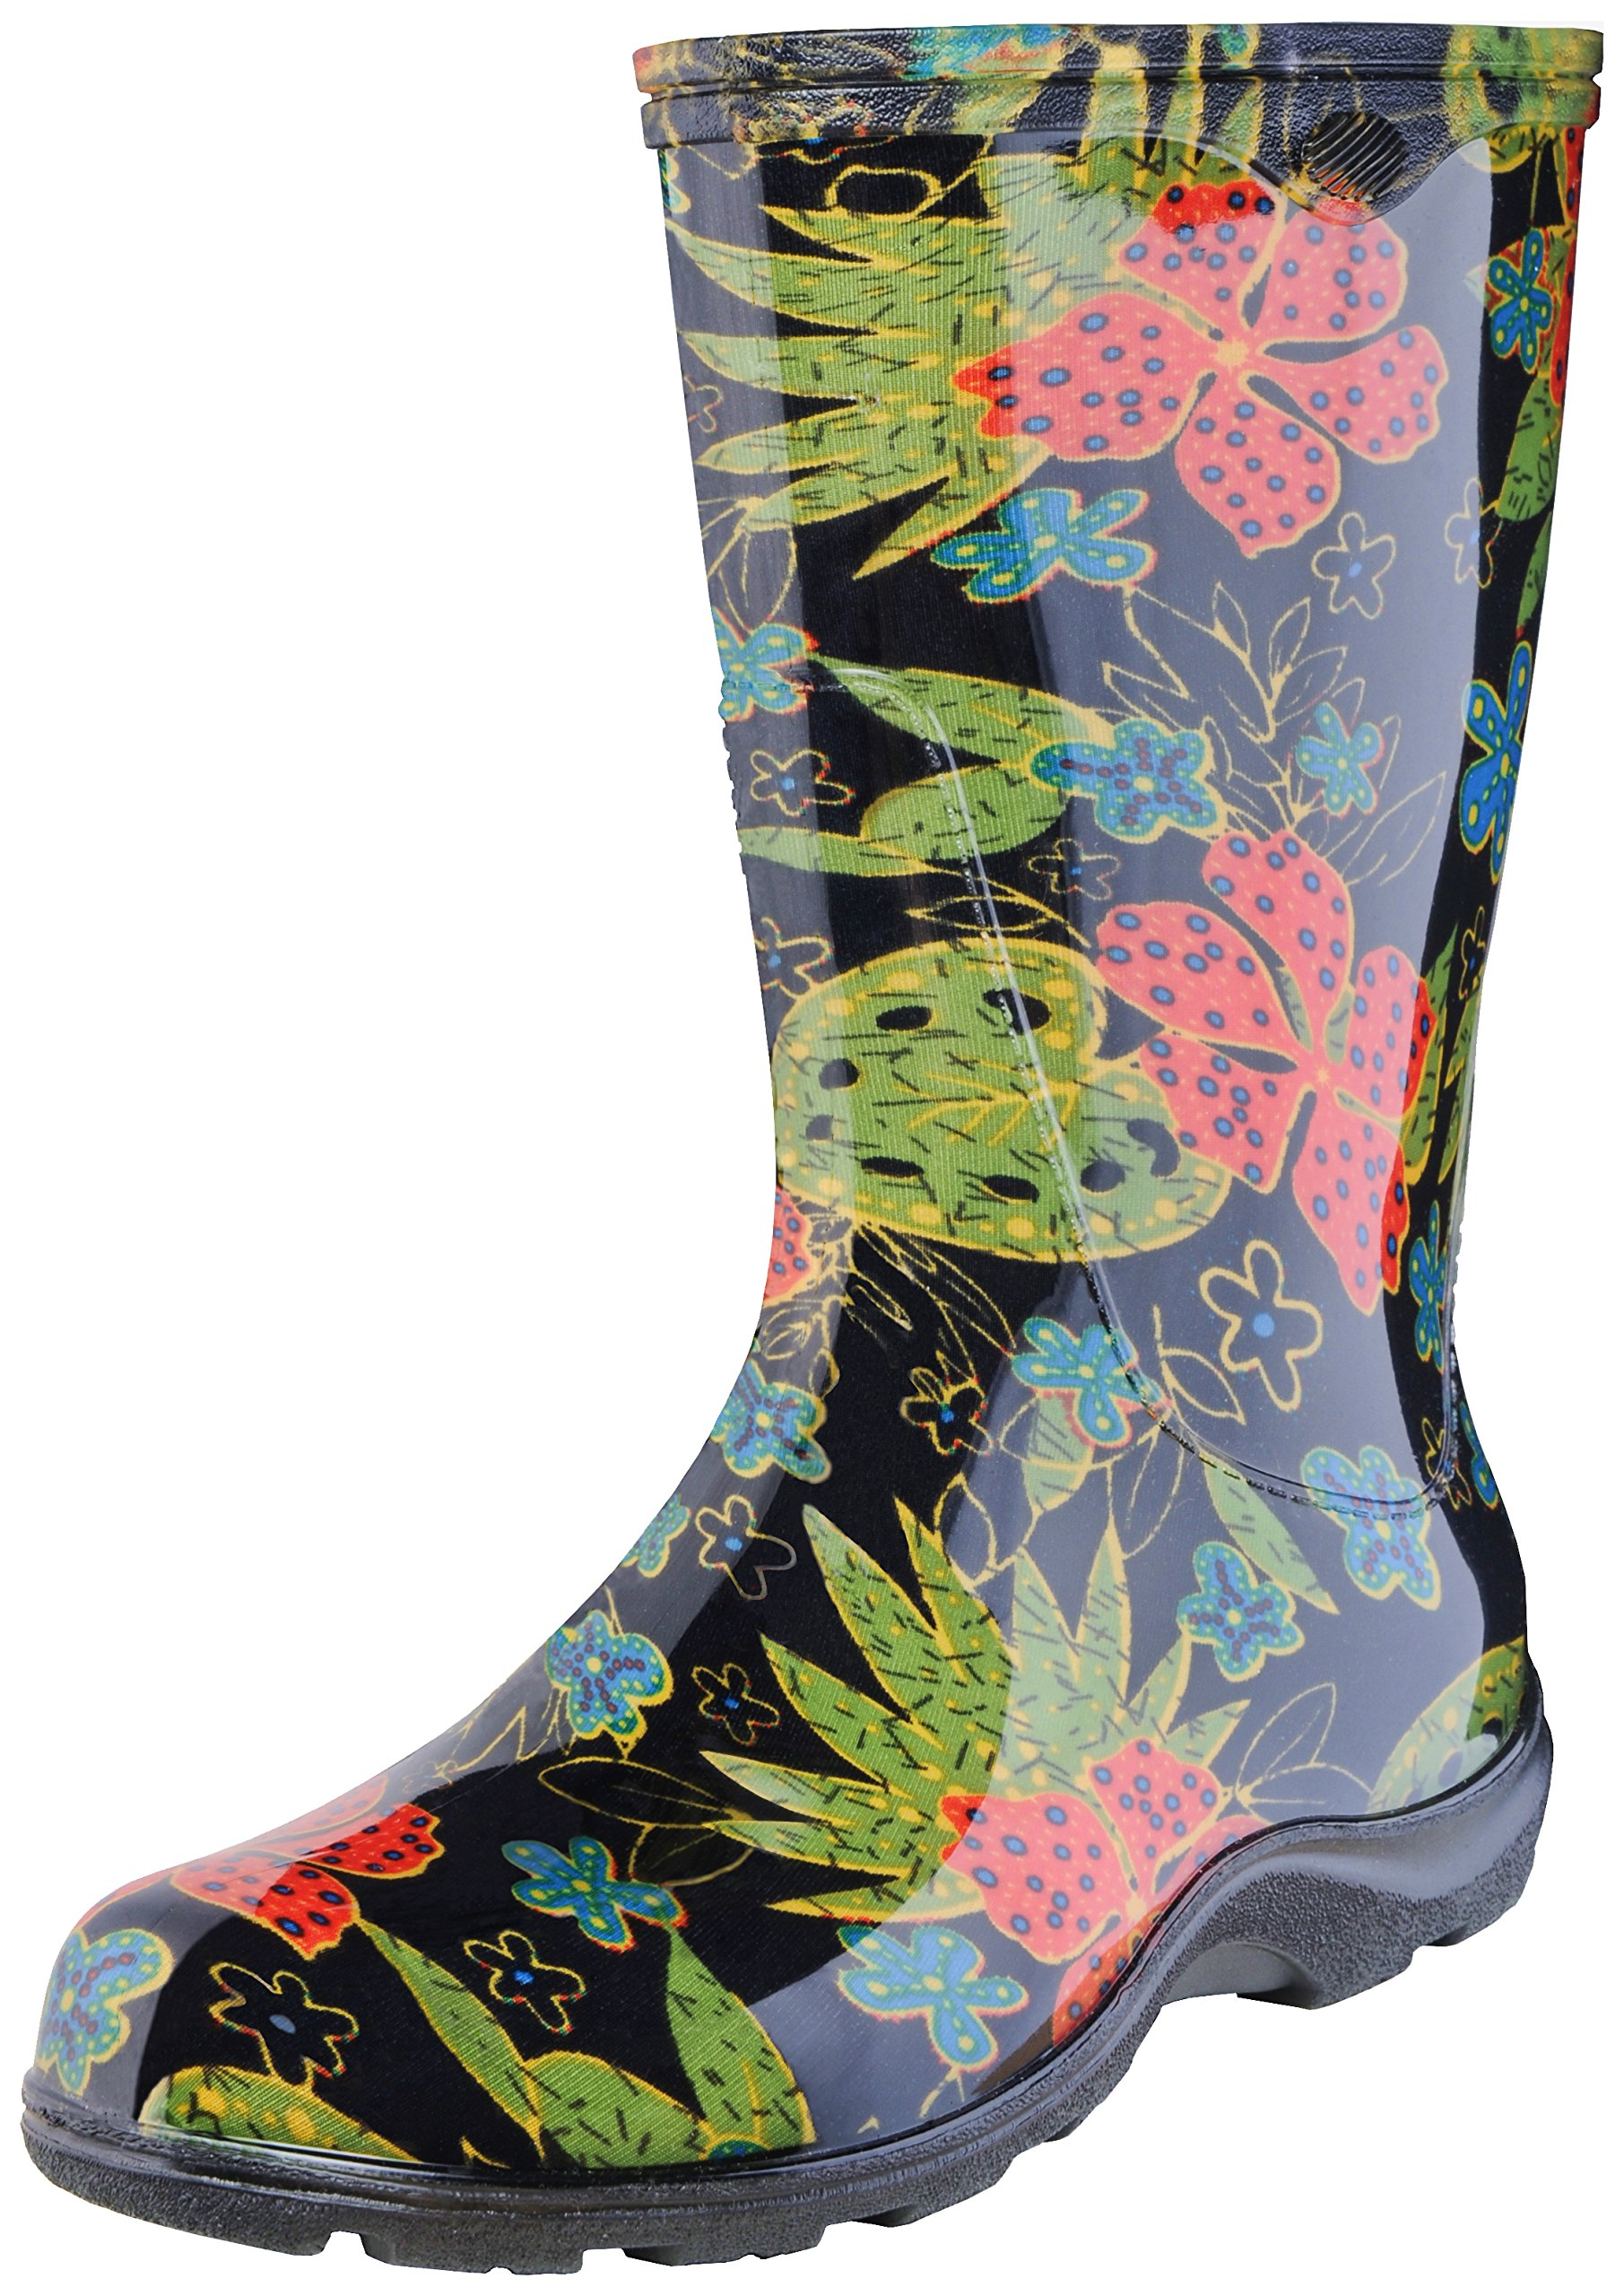 Sloggers Women's  Waterproof Rain and Garden Boot with Comfort Insole, Midsummer Black, Size 10, Style 5002BK10